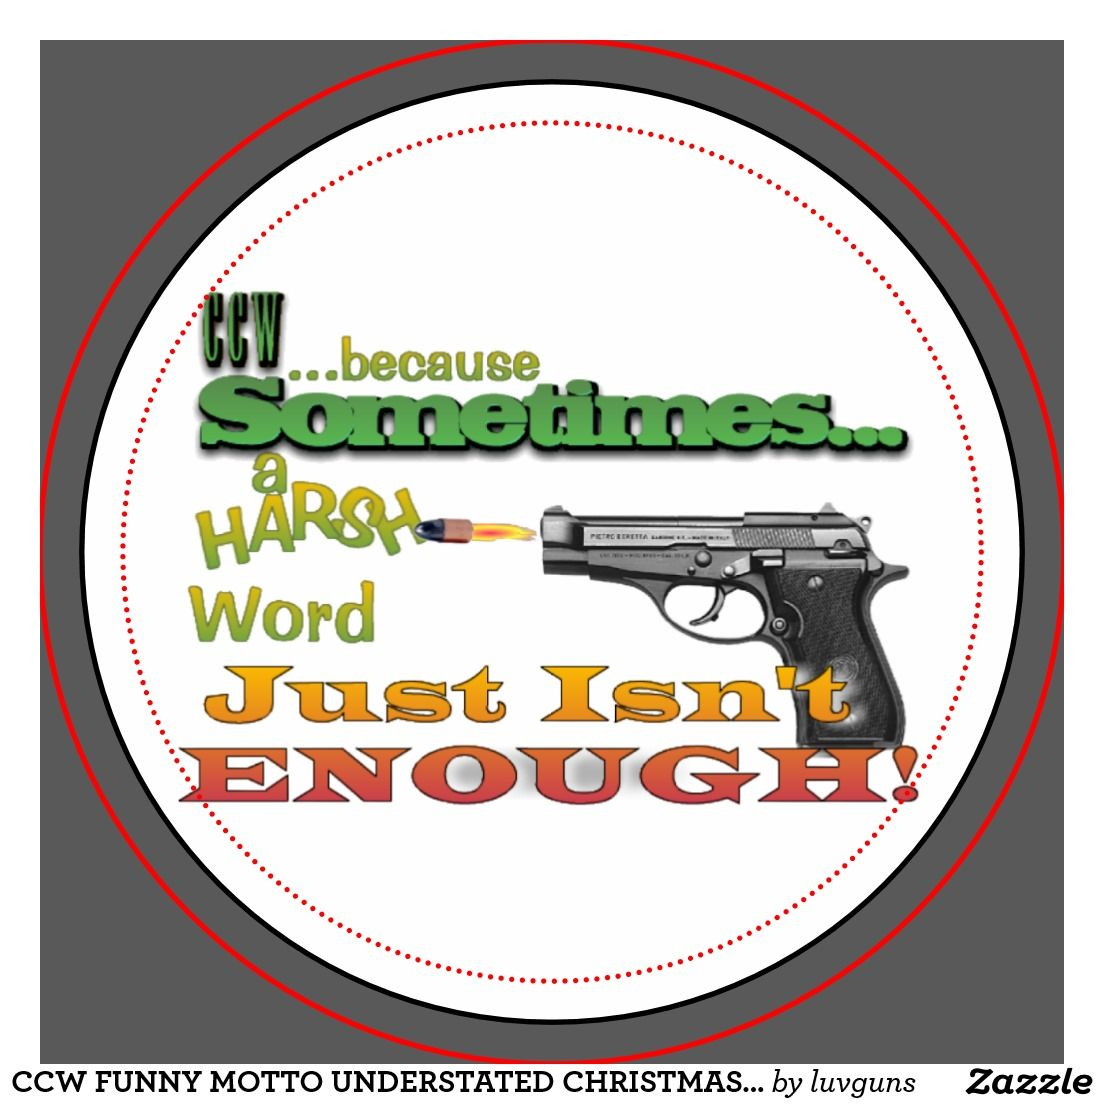 Have you been thinking about getting your utah concealed